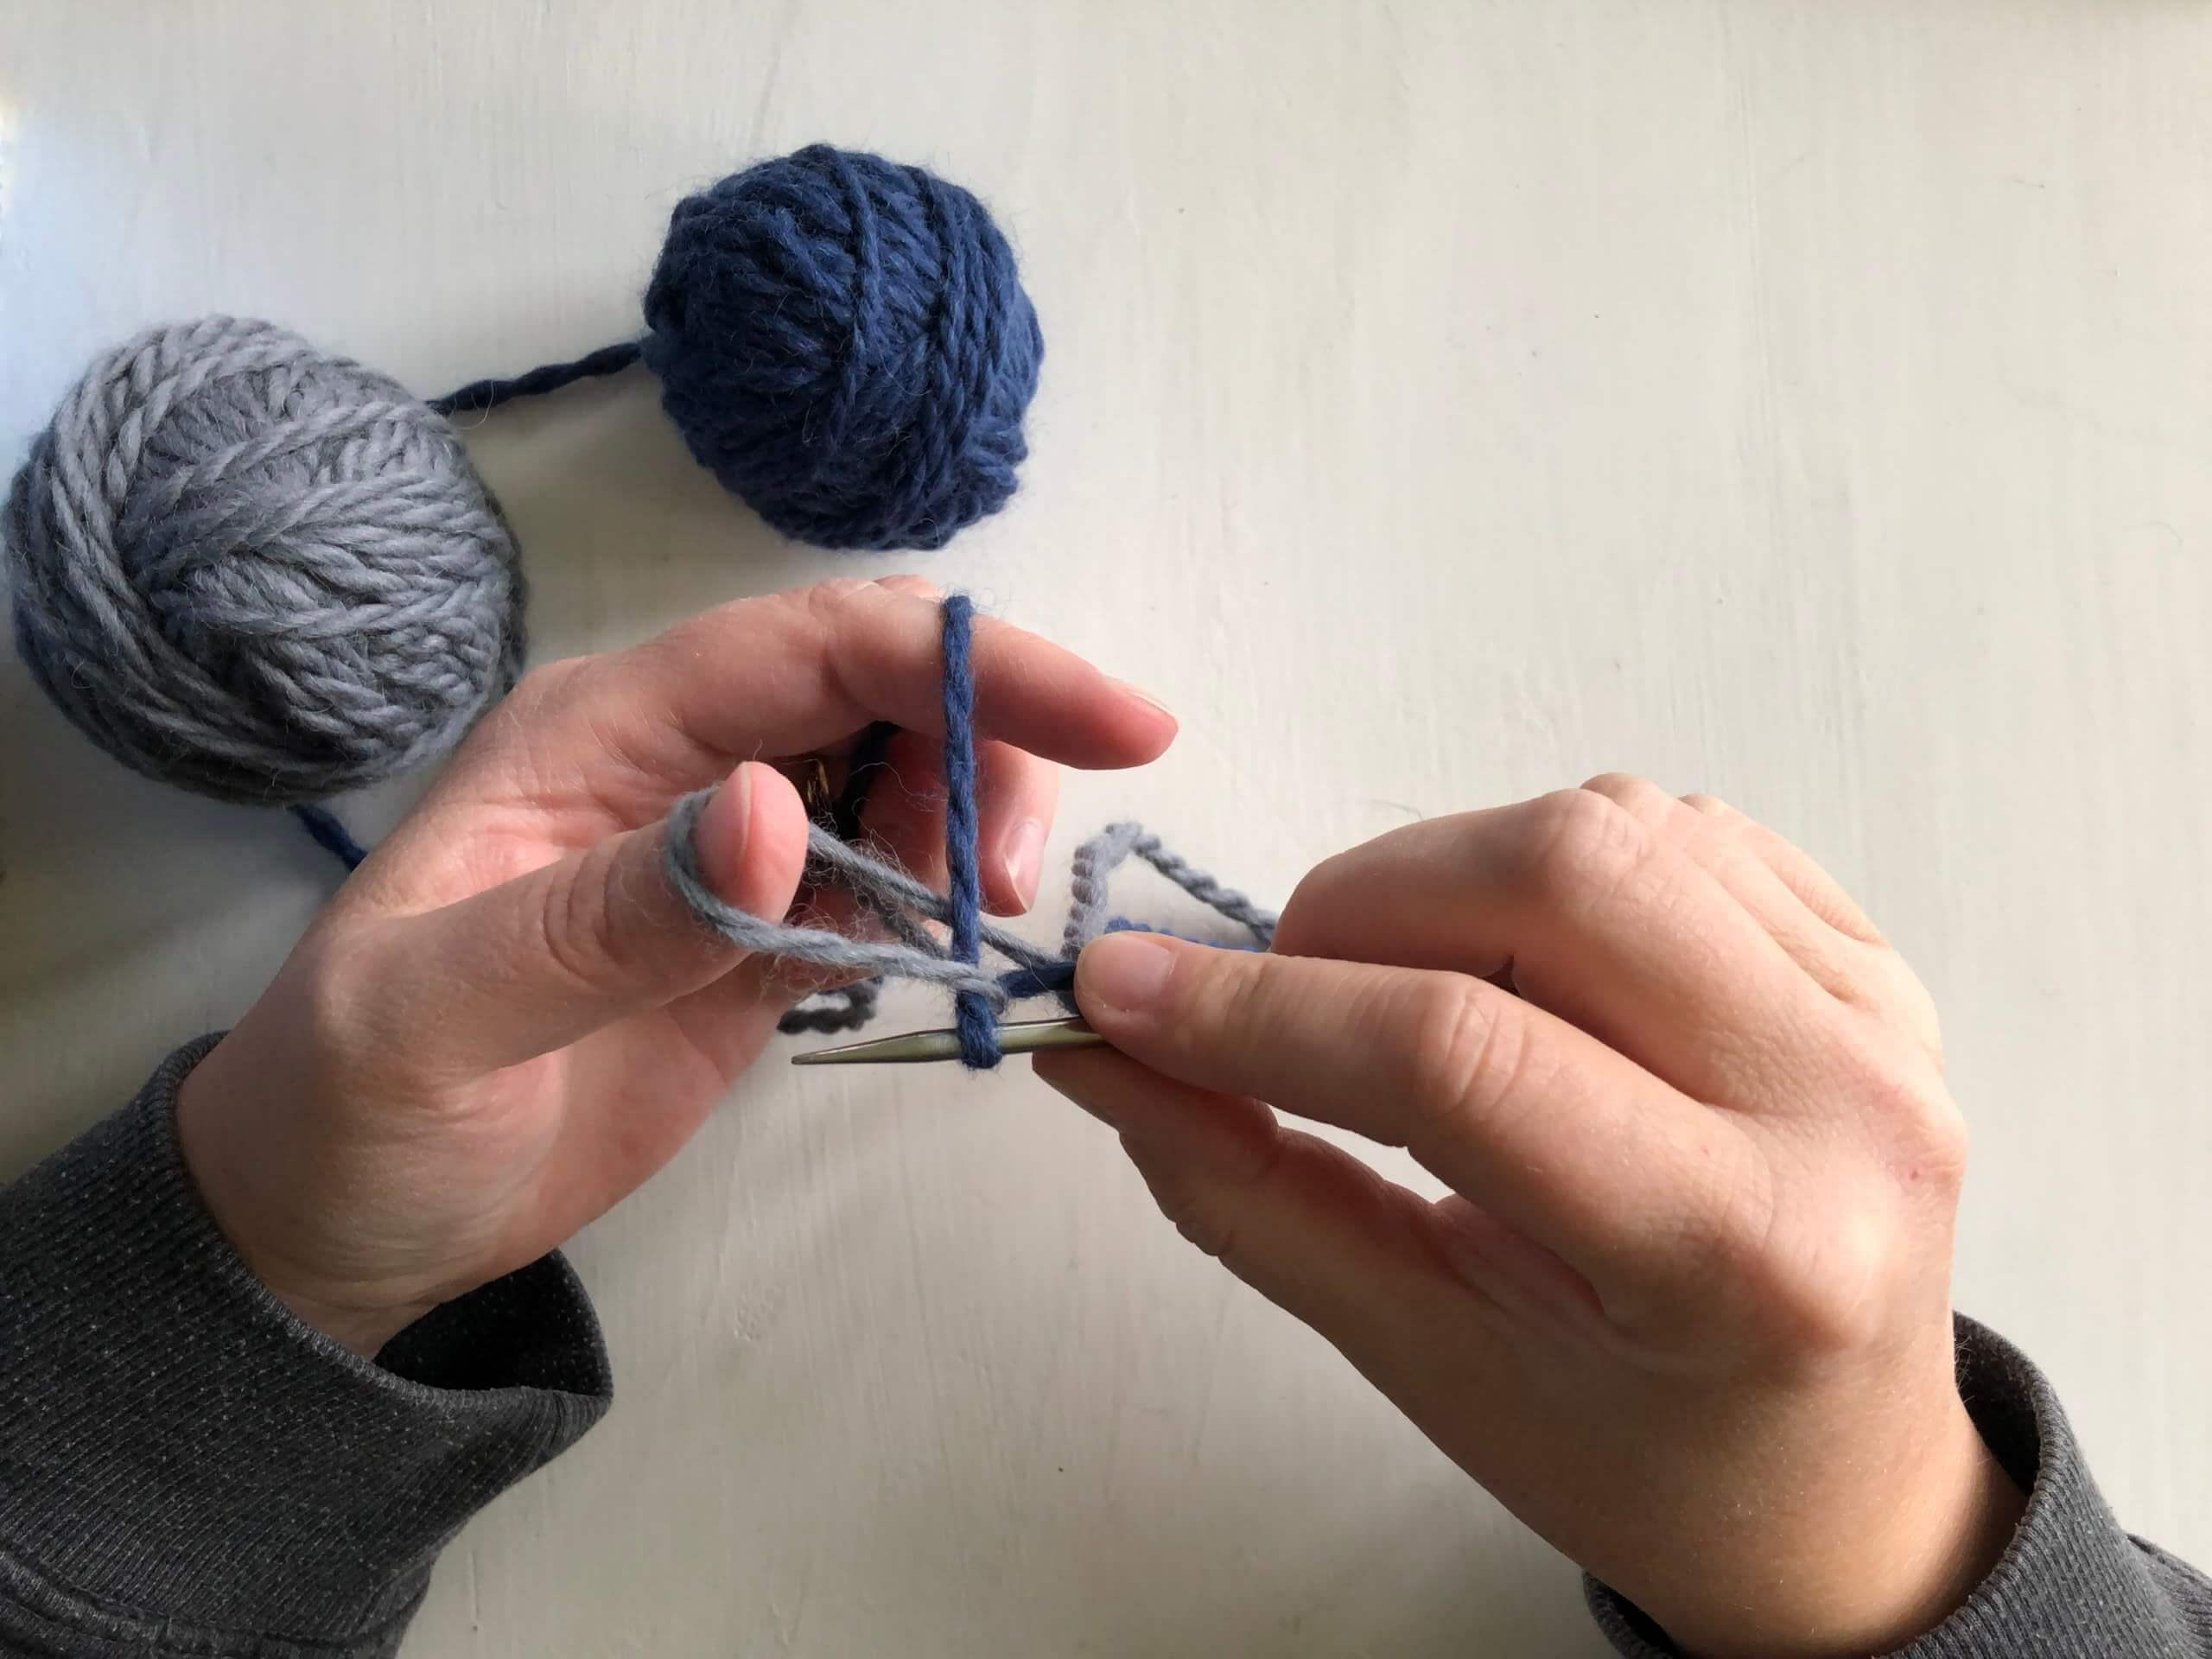 The finally step in creating a stitch with Latvian braid cast on